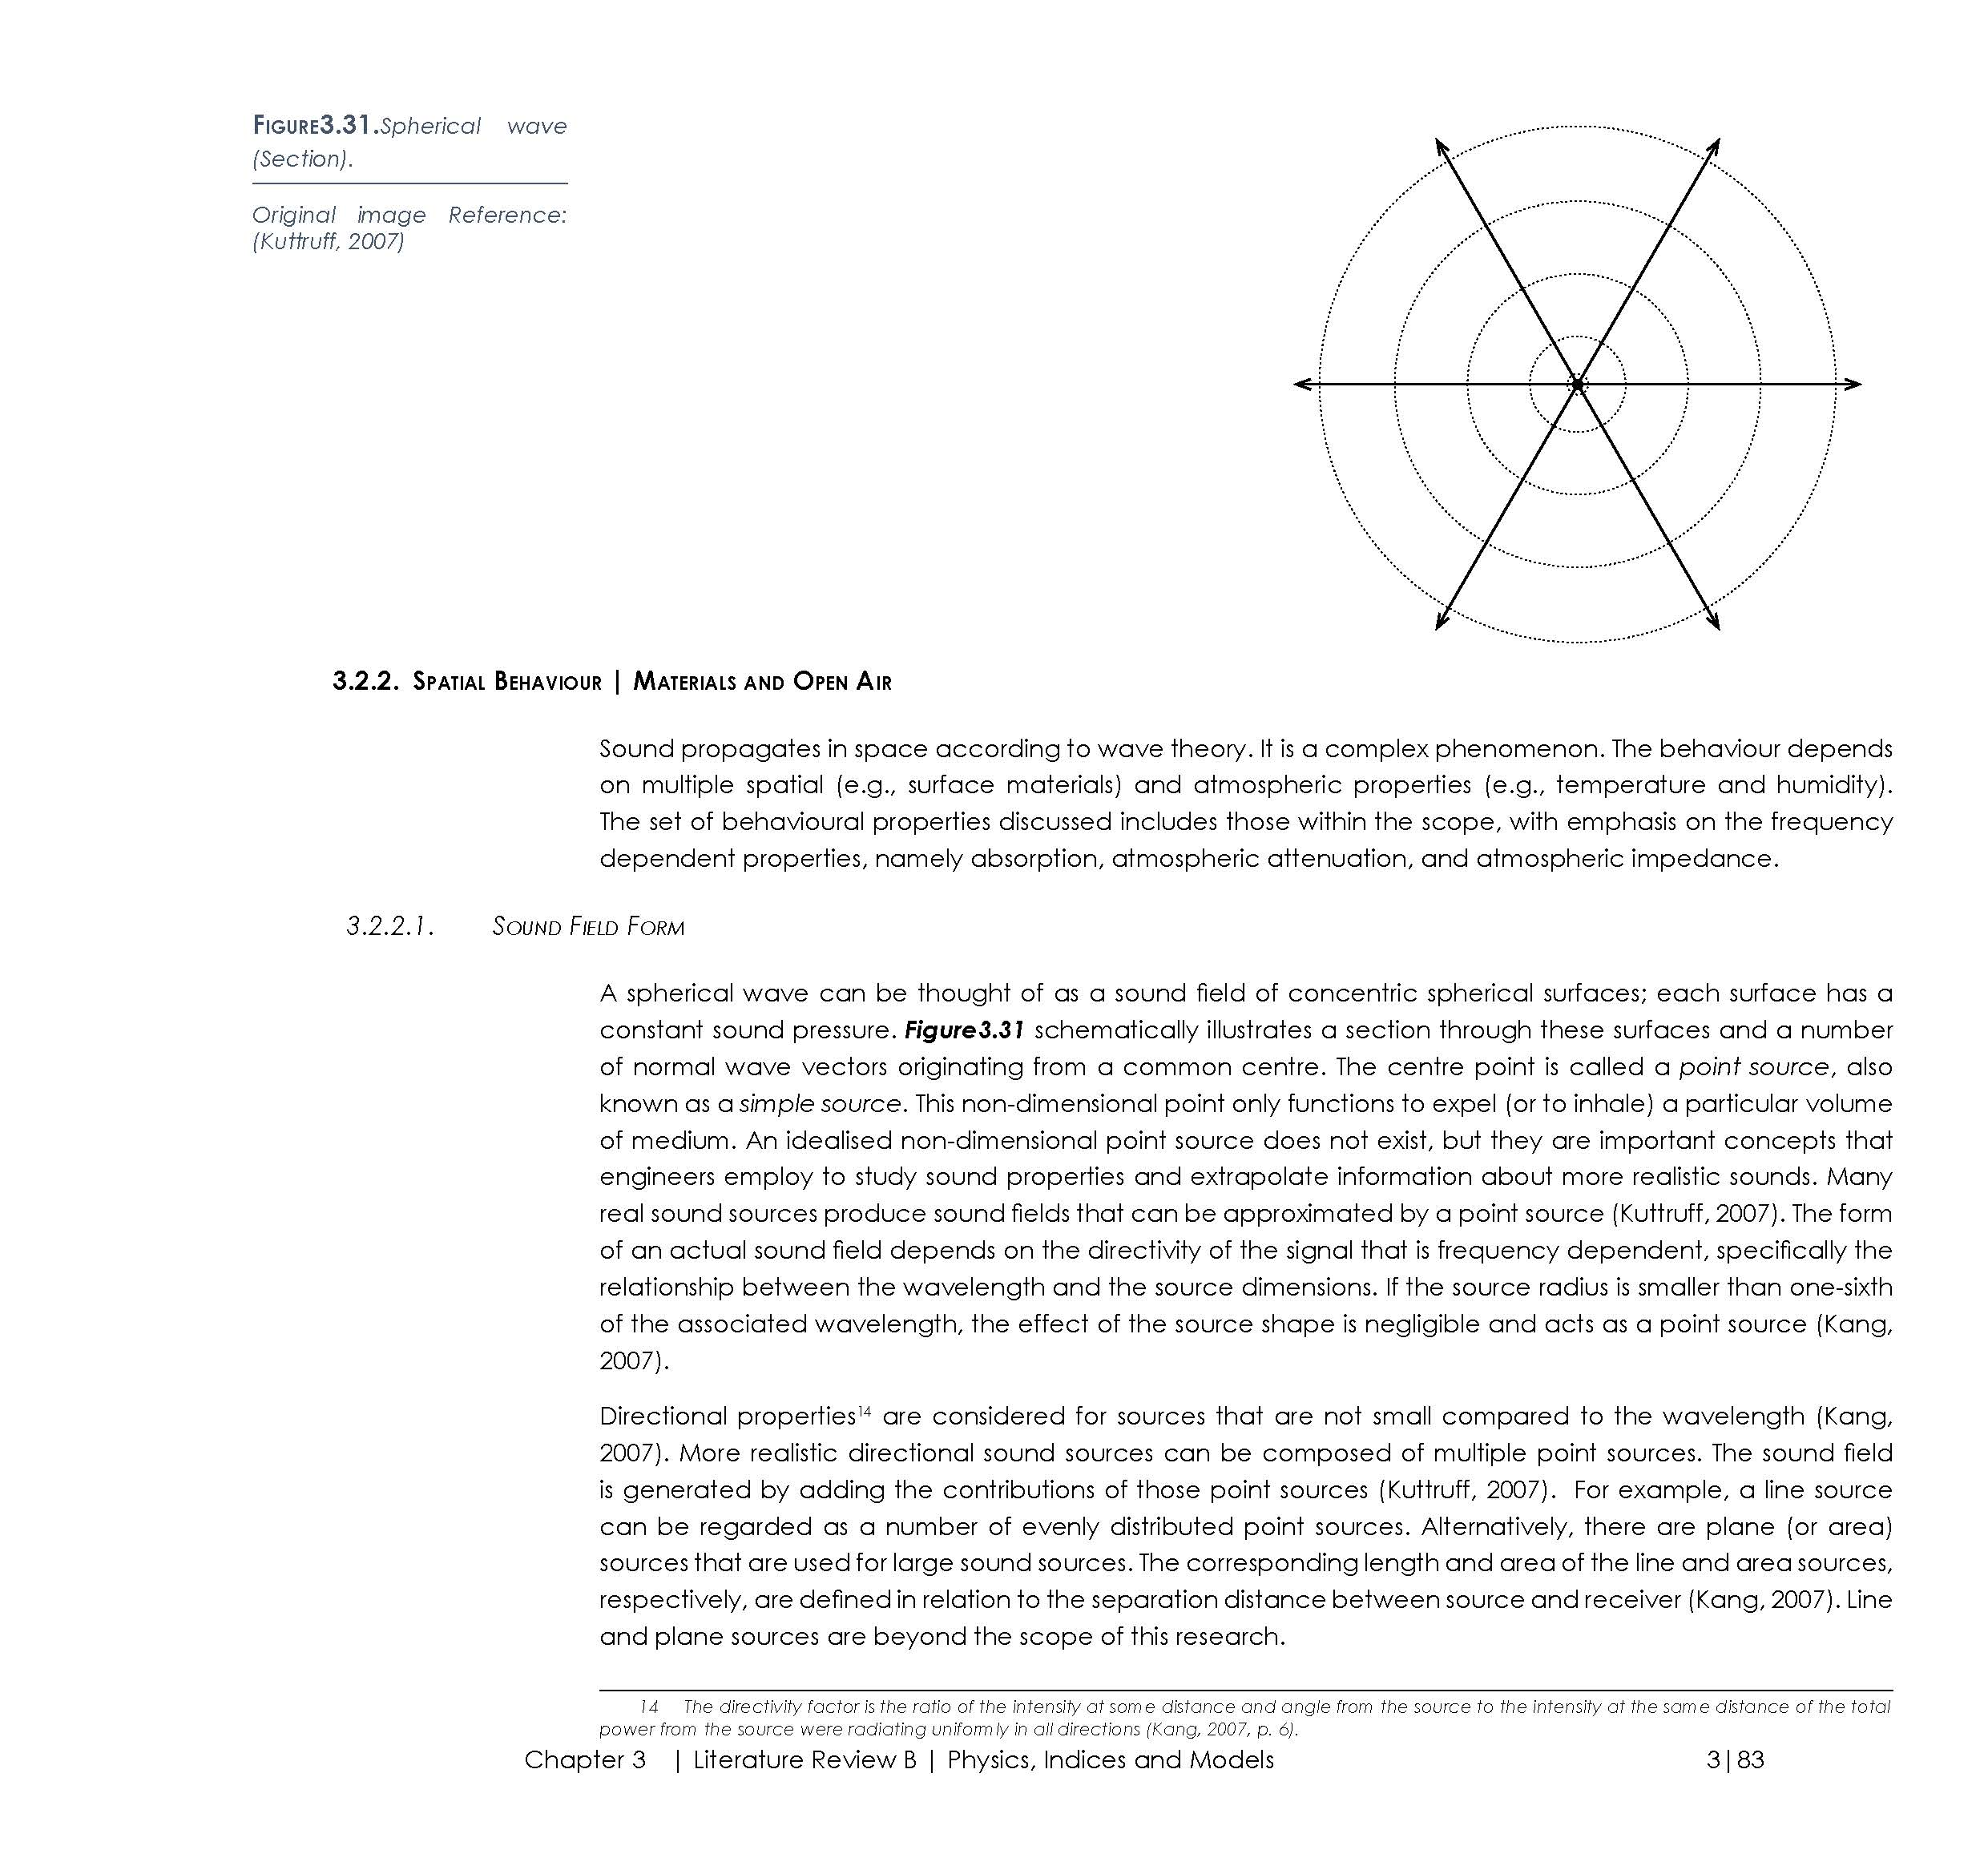 16.03.03_Thesis_01_Interactive_Page_119.jpg